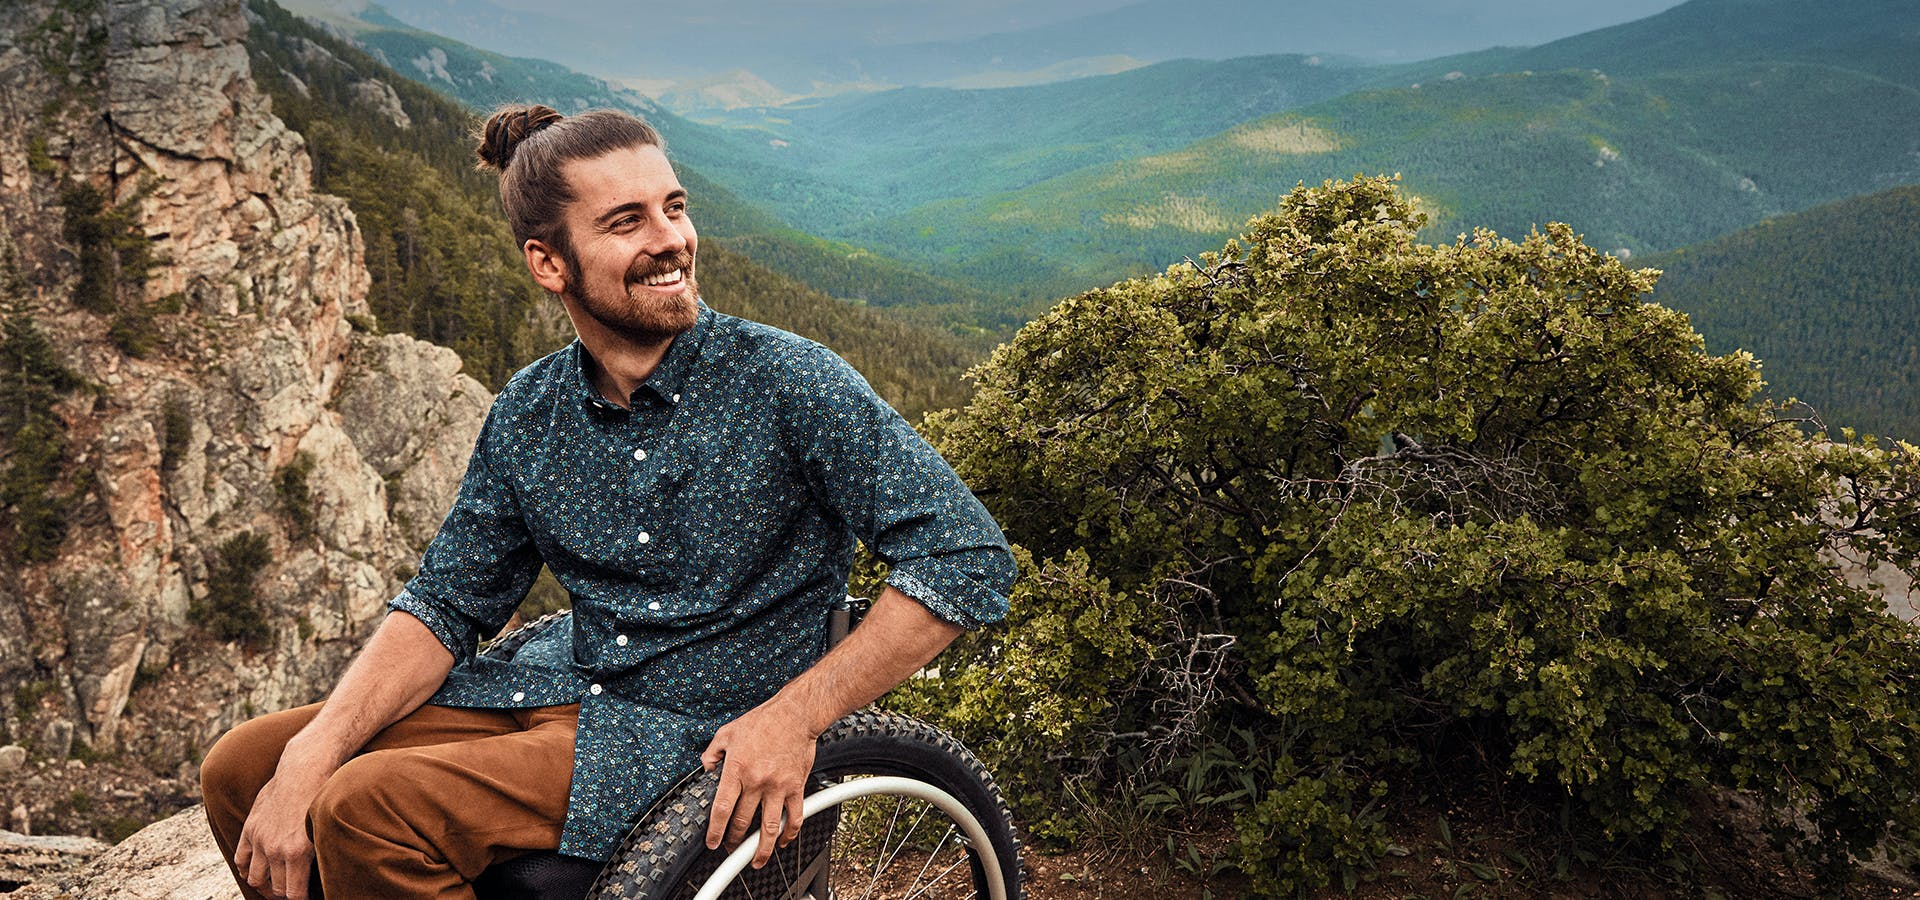 Meet Justin, a Coloradan that can usually be found in nature and a good shirt.